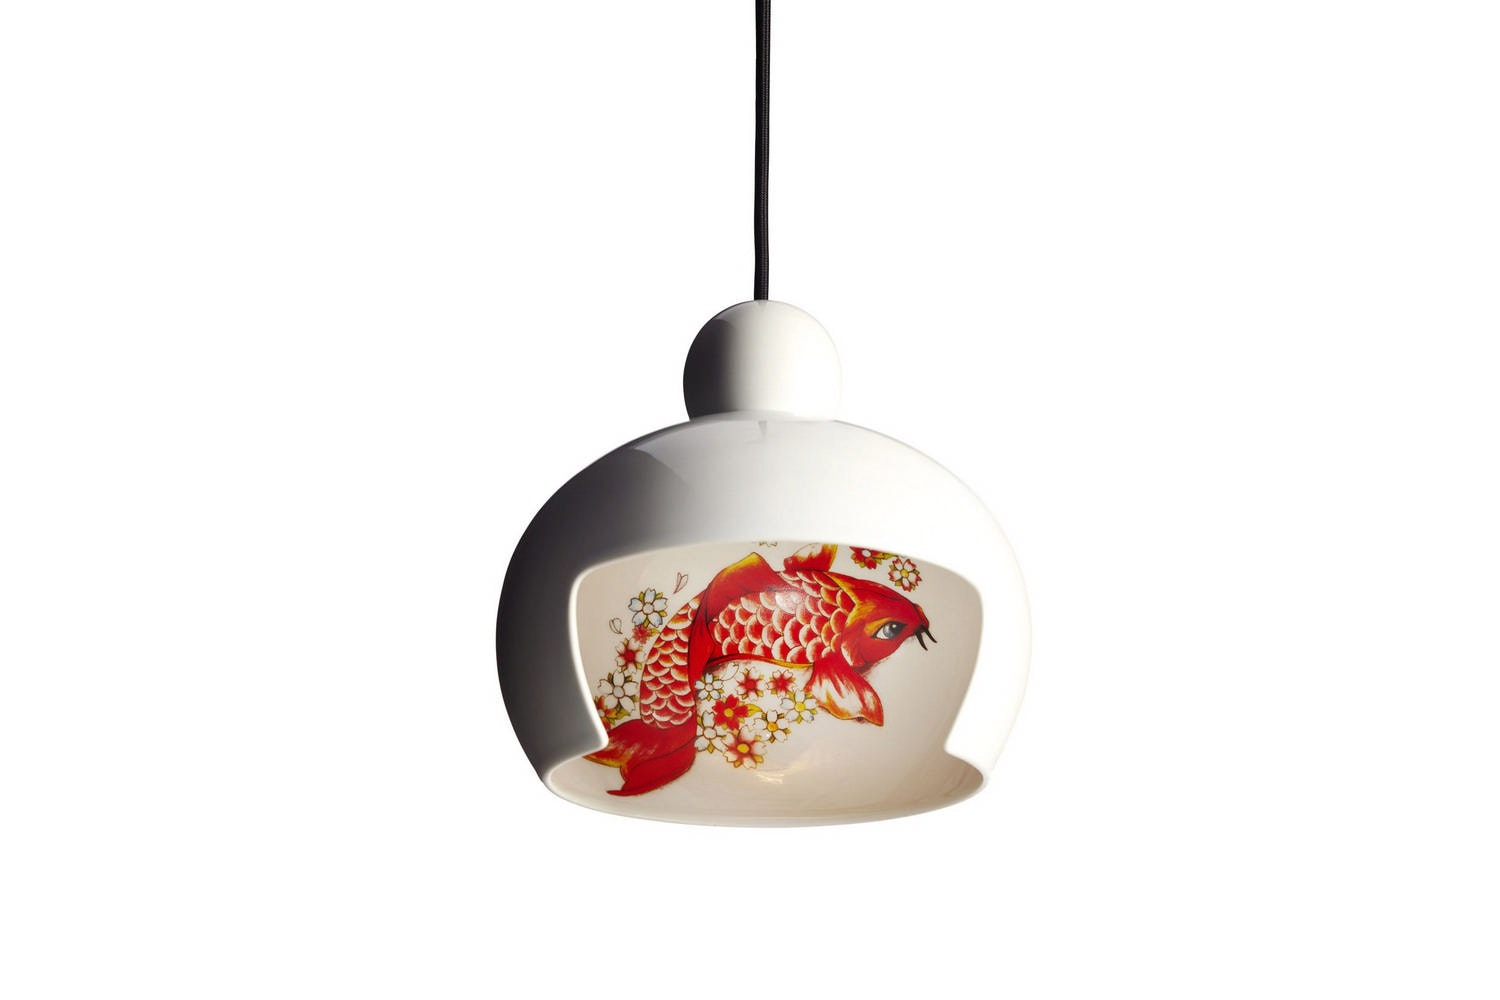 Juuyo Suspension Lamp by Lorenza Bozzoli for Moooi